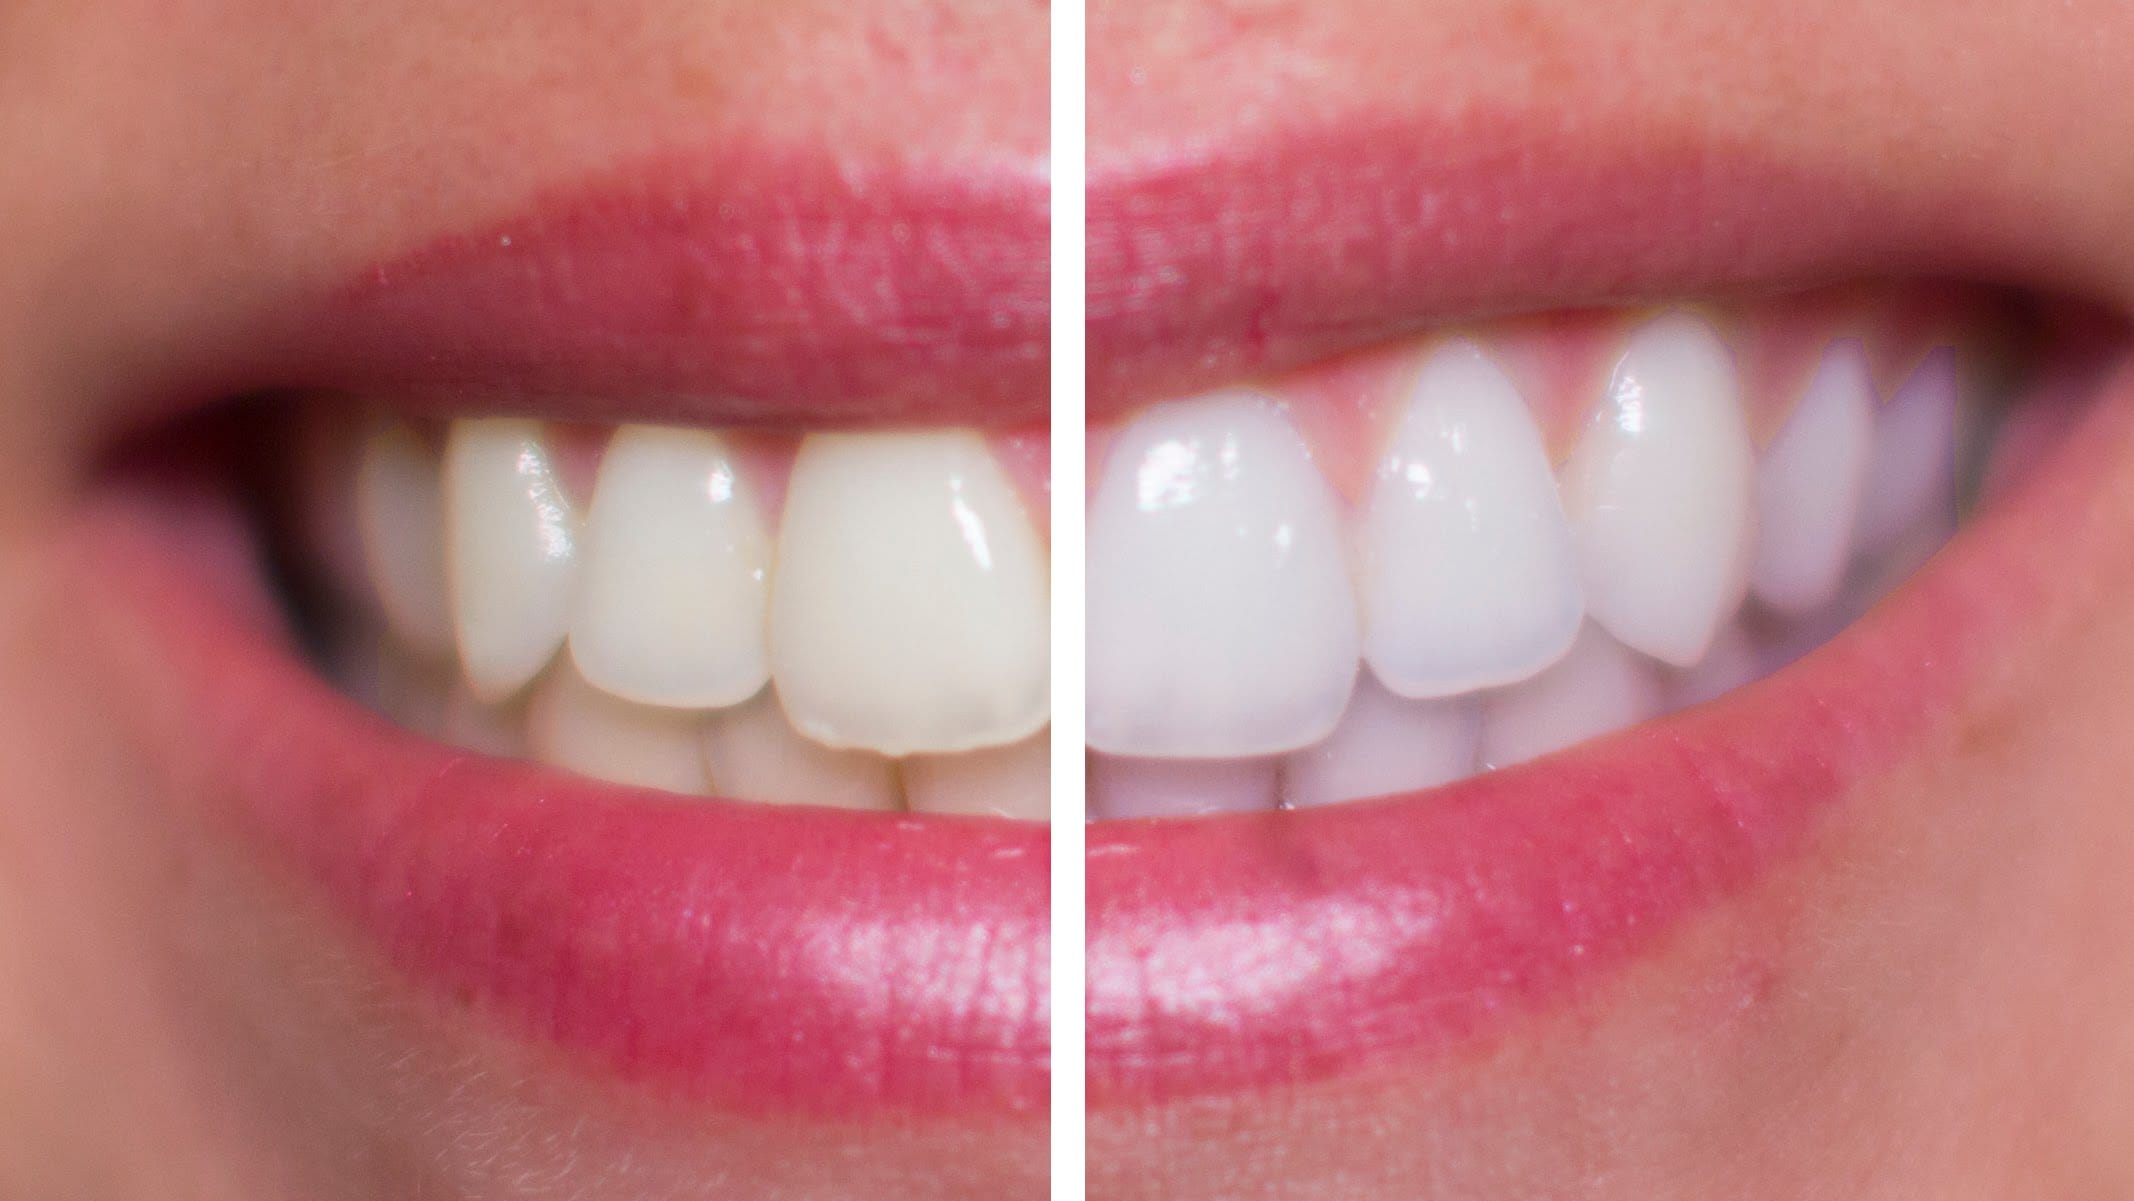 How to Whiten Teeth With Hydrogen Peroxide recommend